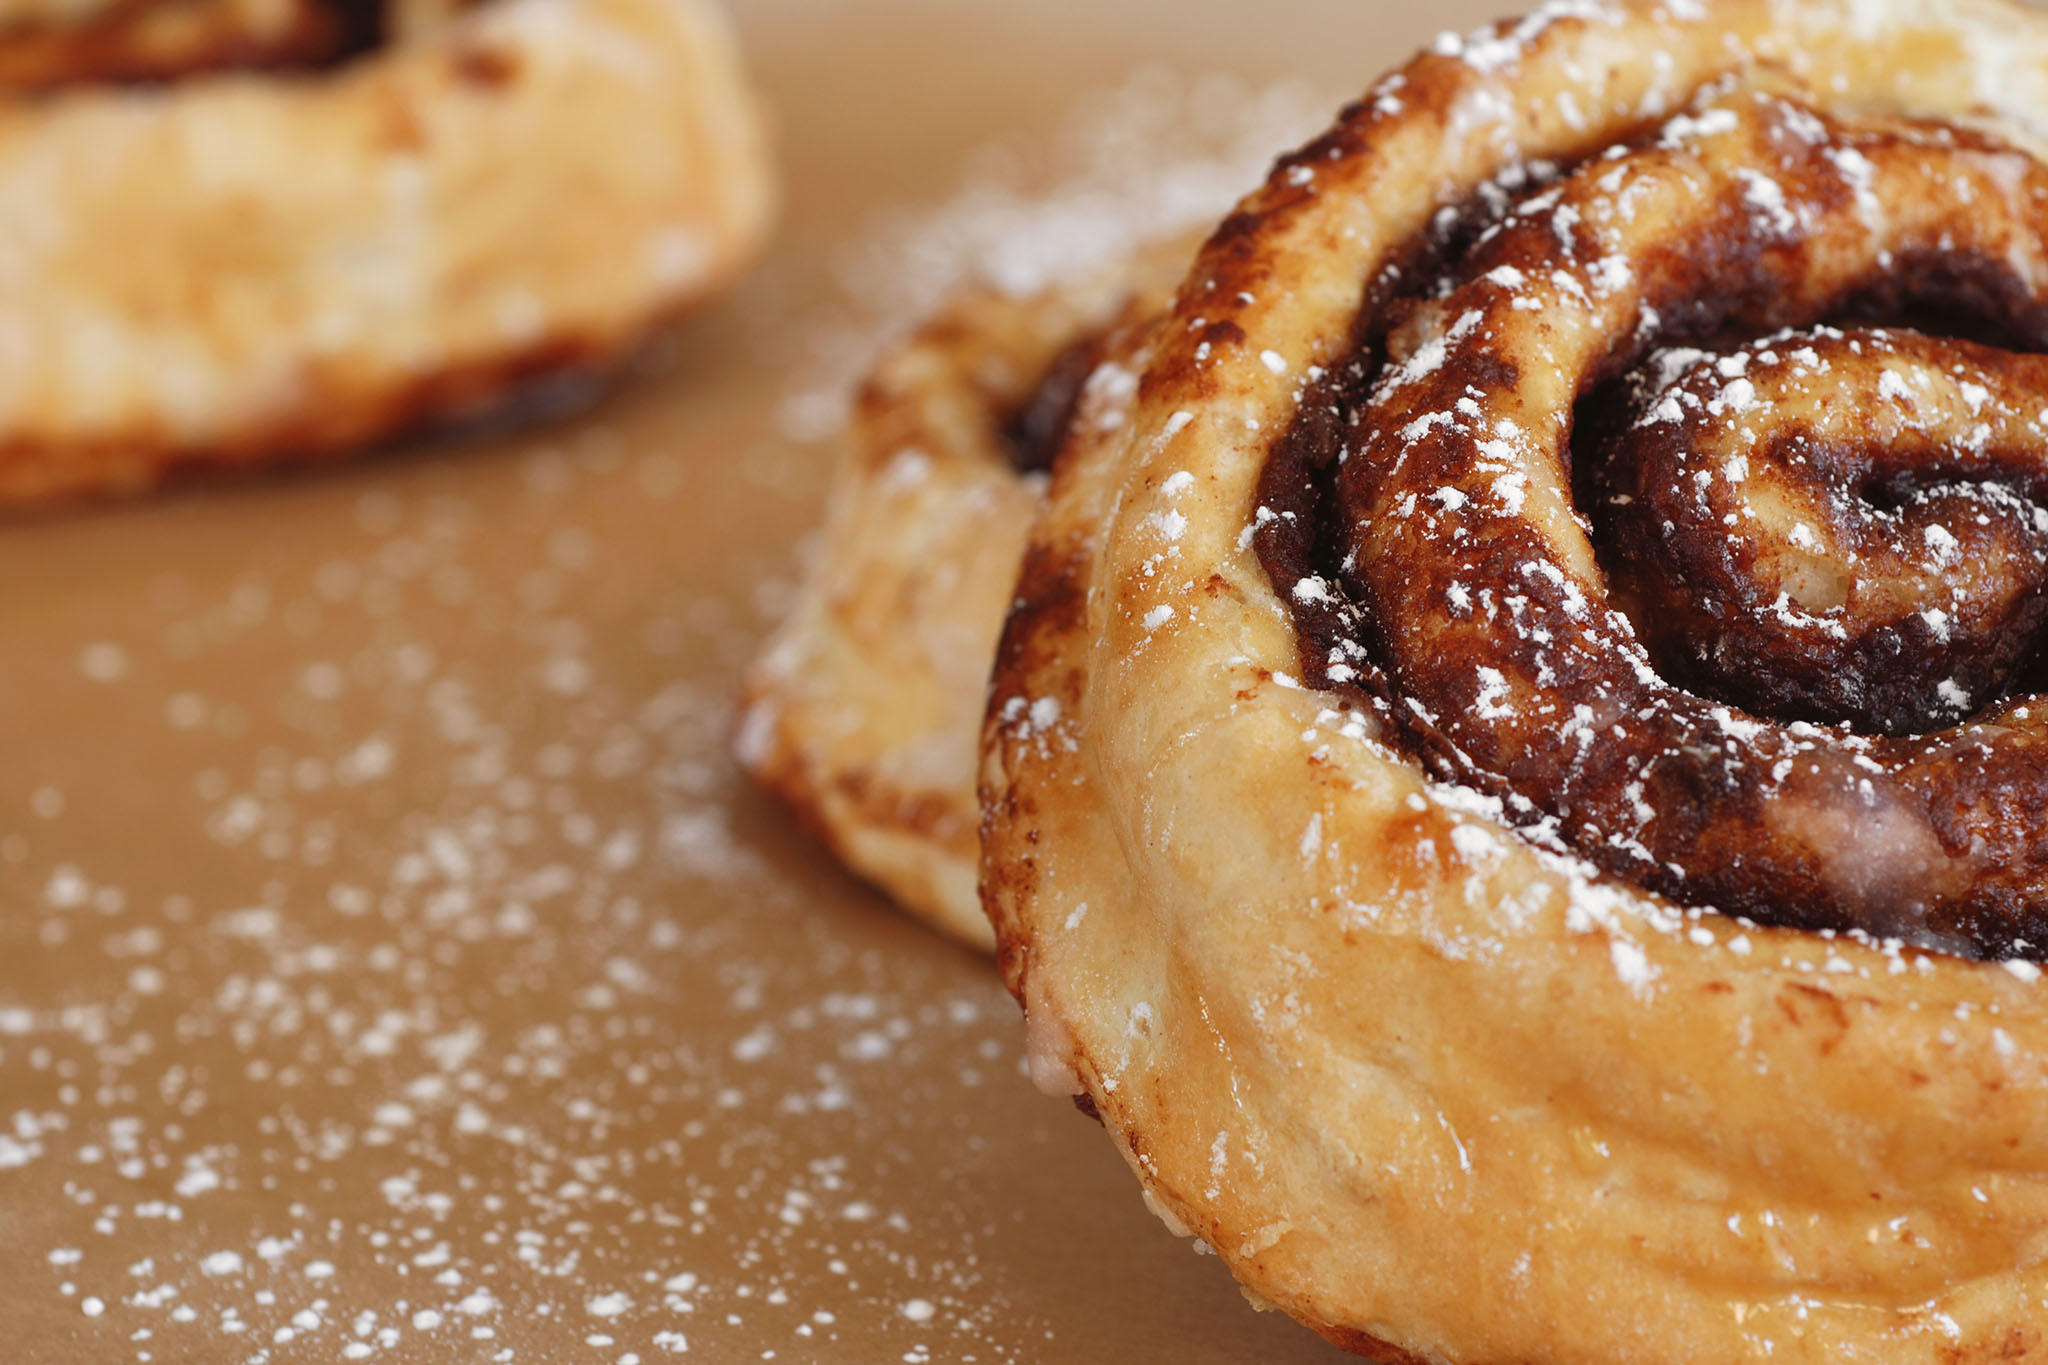 Savor the cinnamon rolls at Knaus Berry Farm